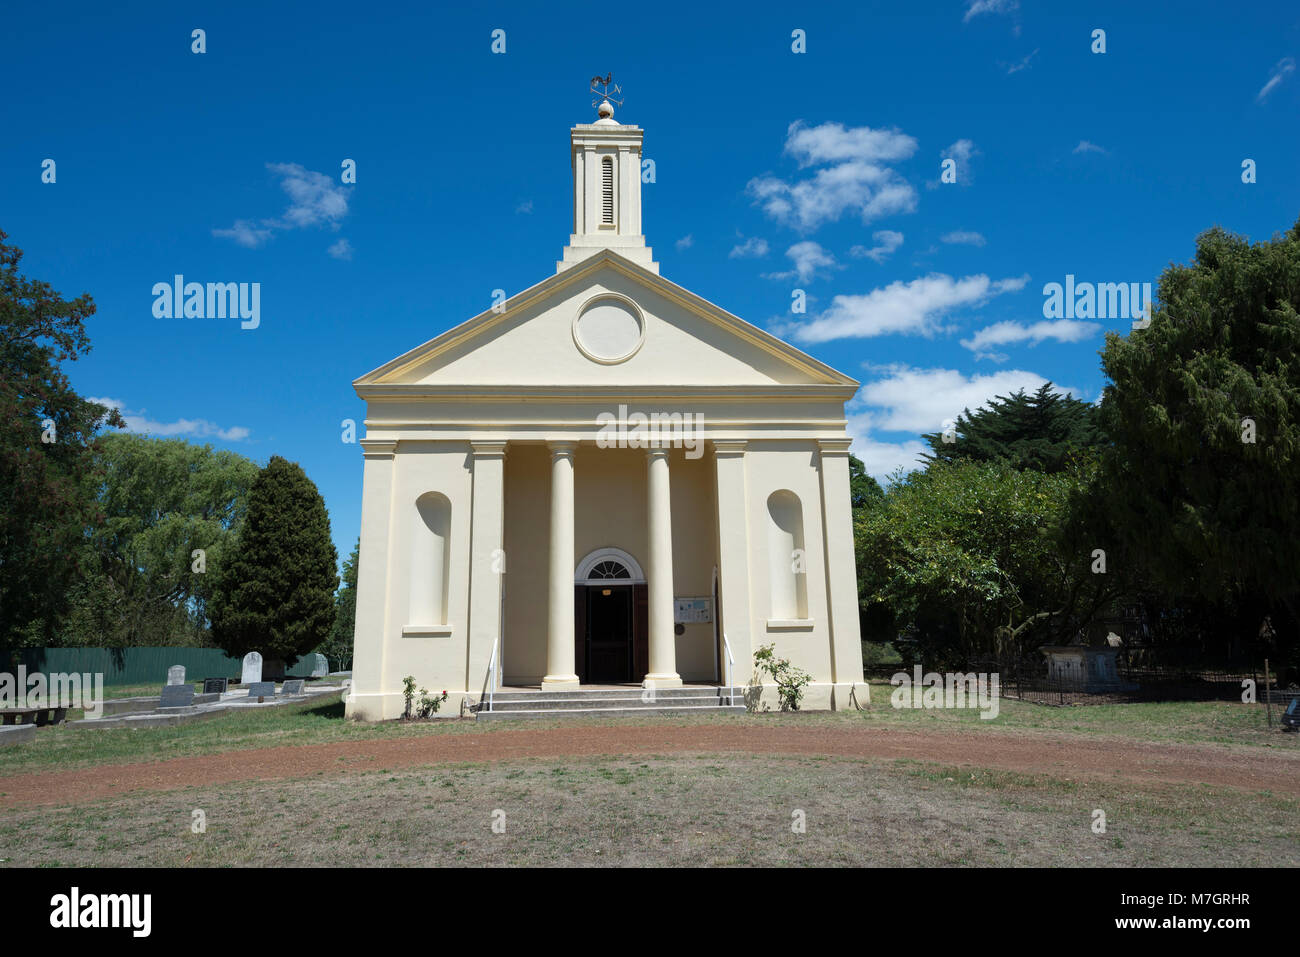 St Andrew's Uniting Church in Evandale, Tasmania, Australia. Built in 1839-40, it is a fine example of Greek - Stock Image